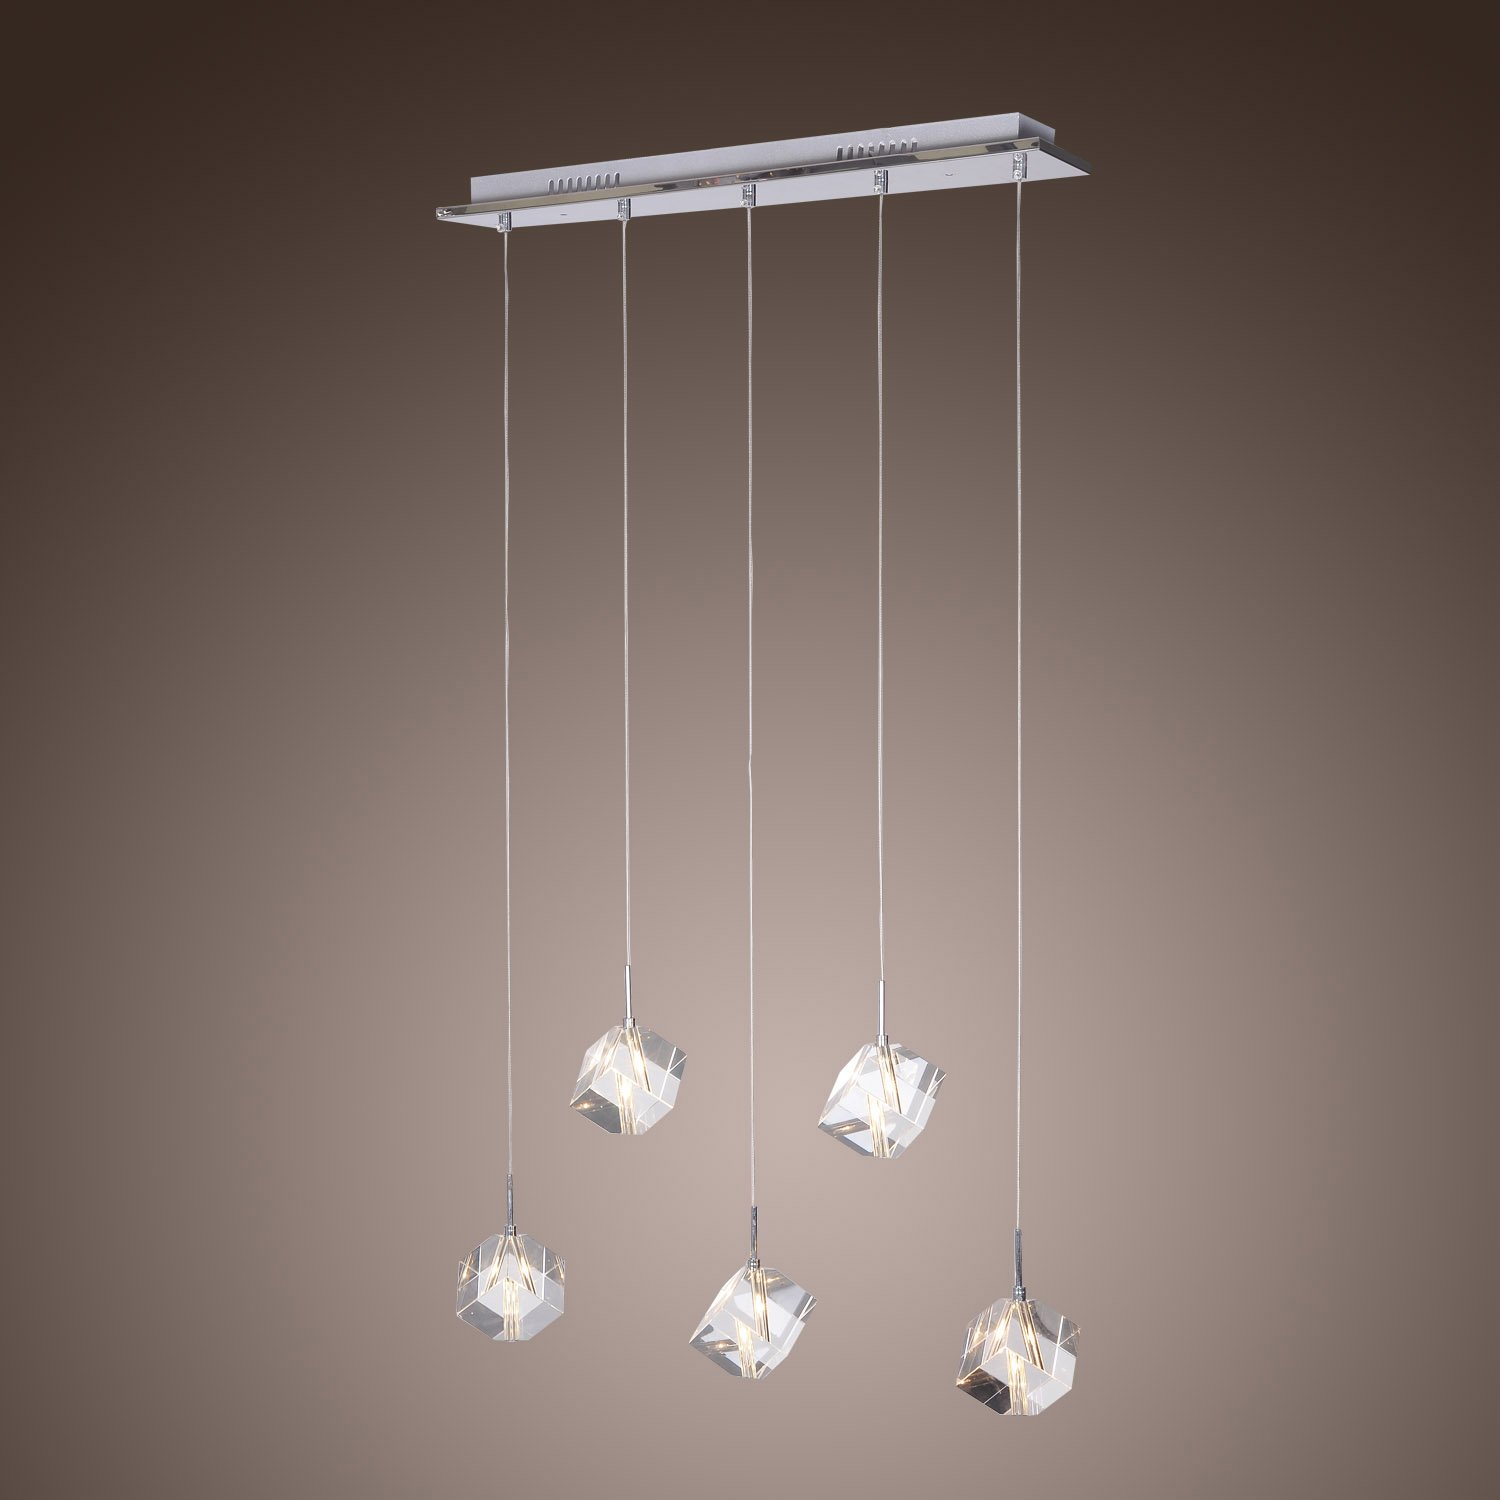 LightInTheBox K9 Crystal Bar Pendant Light with 5 Lights, Modern ...